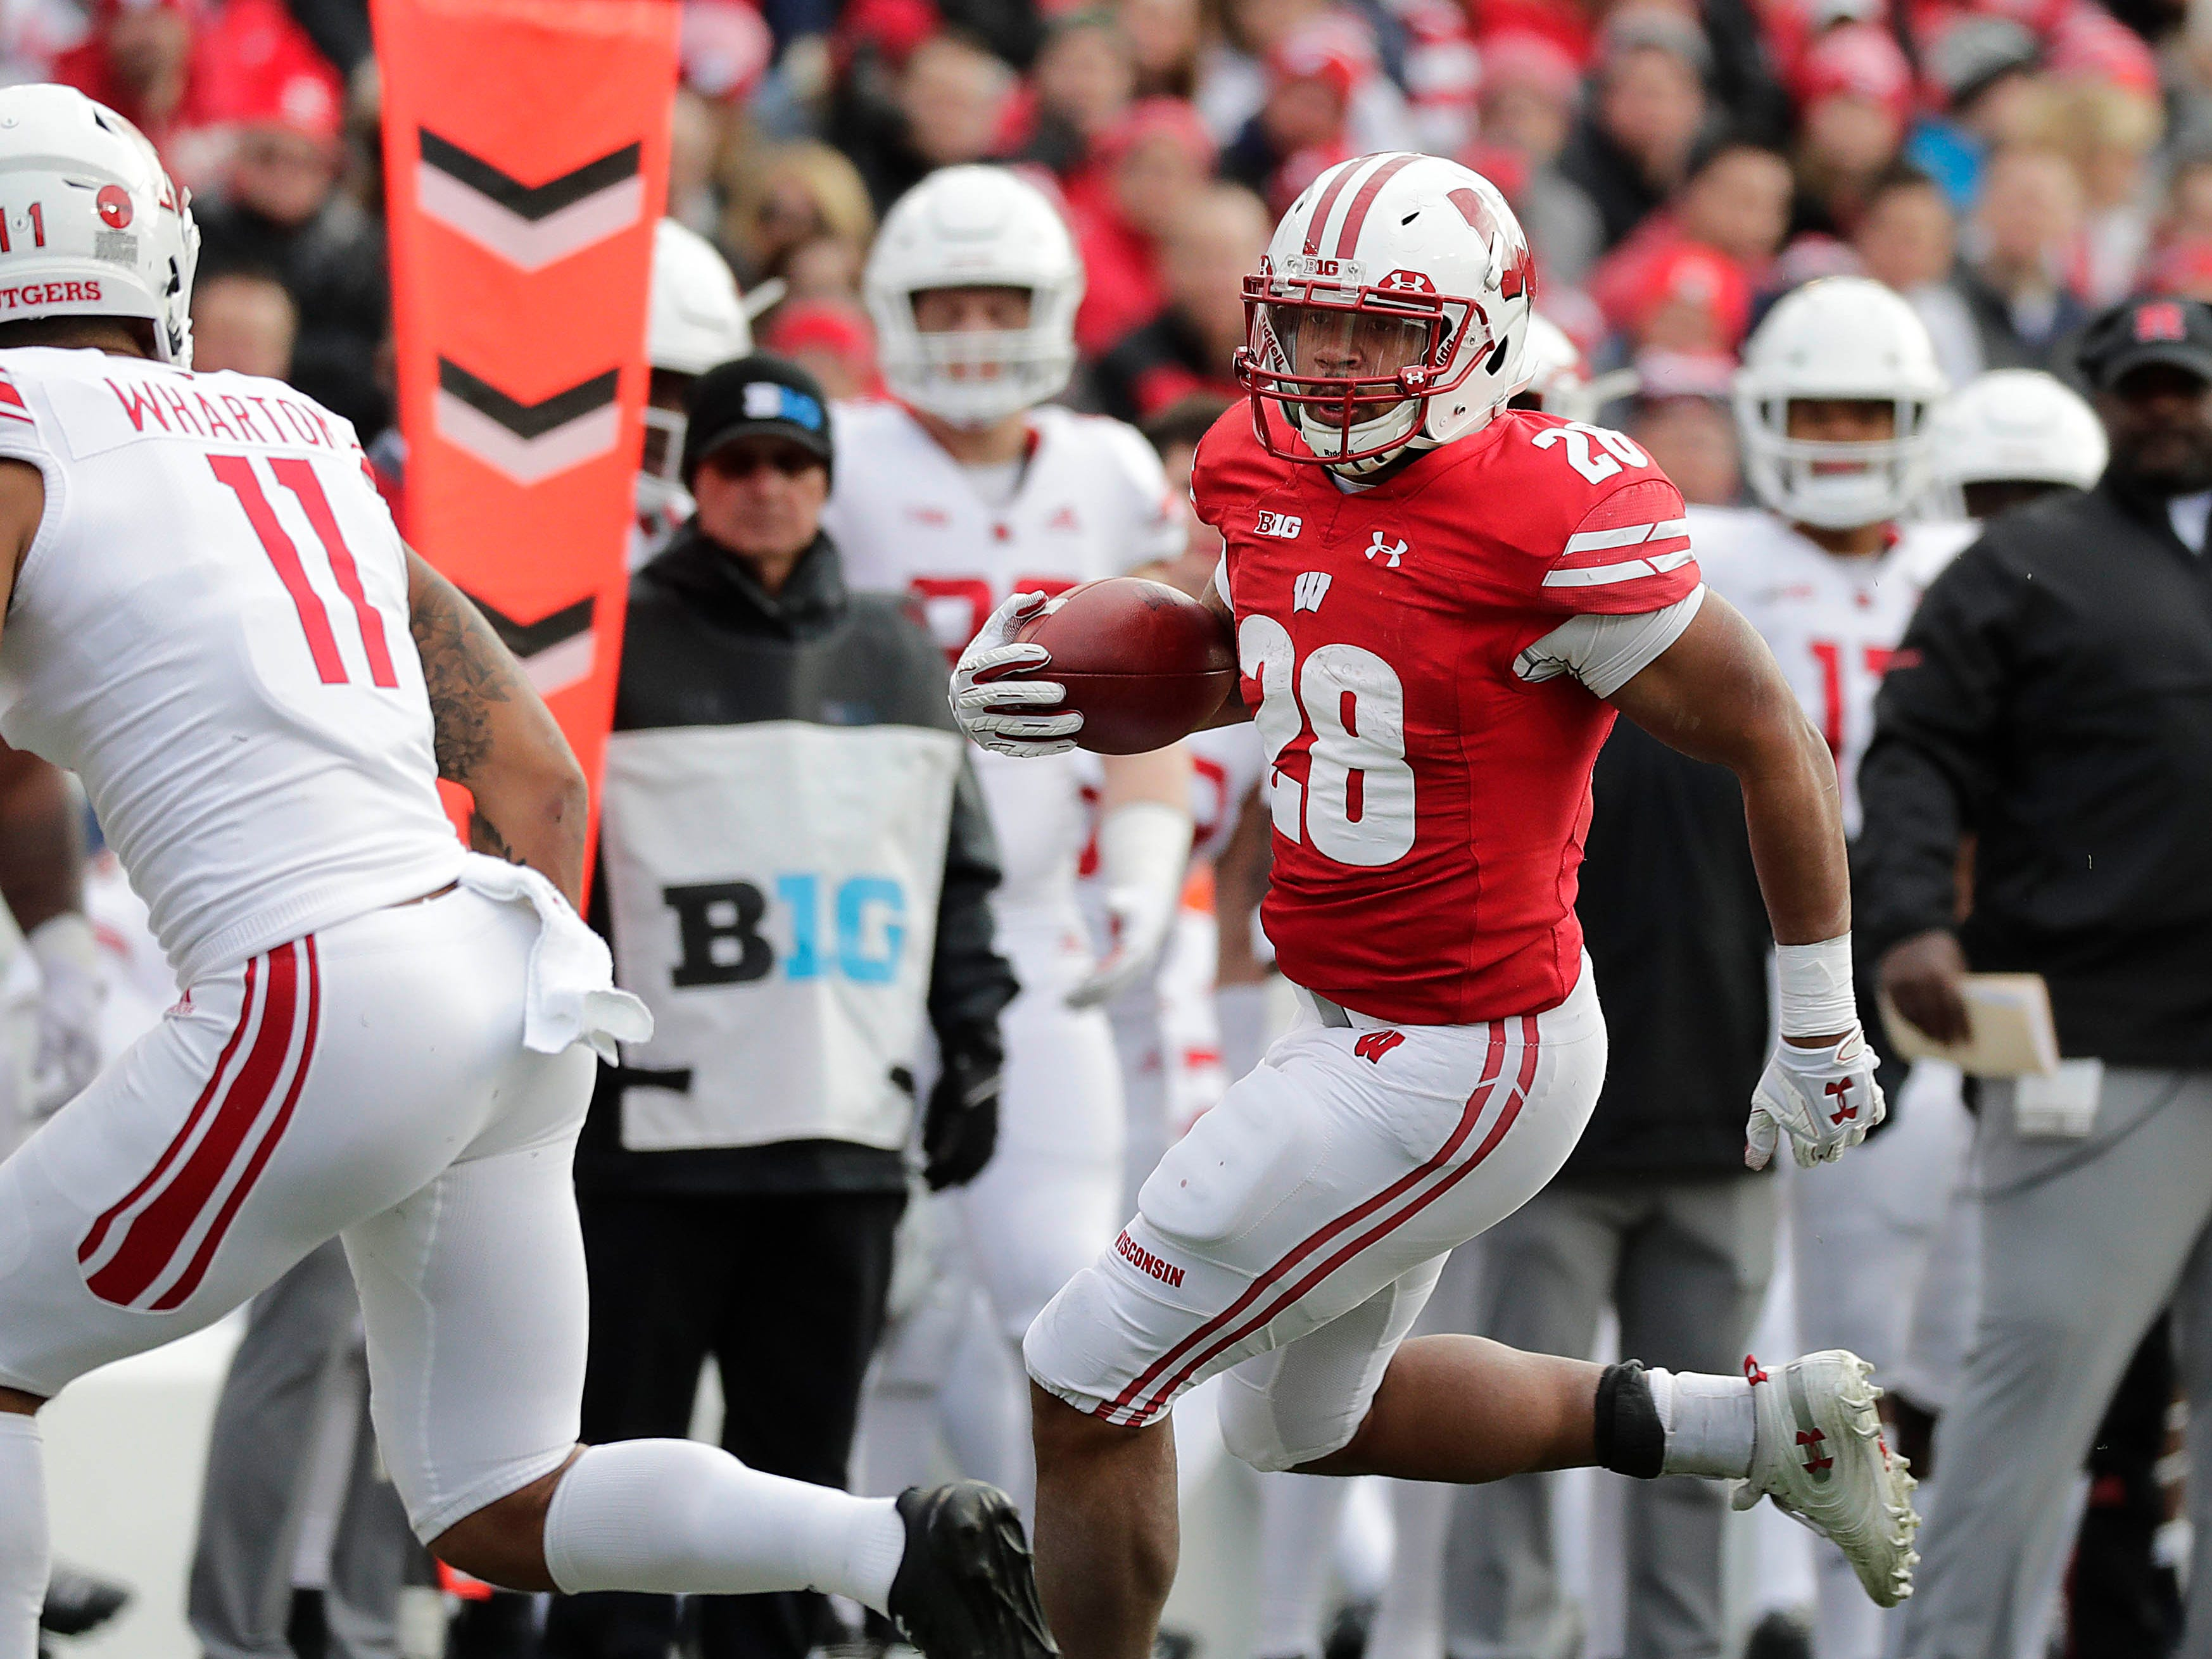 Badgers running back Taiwan Deal picks up a first down against Rutgers on Saturday.